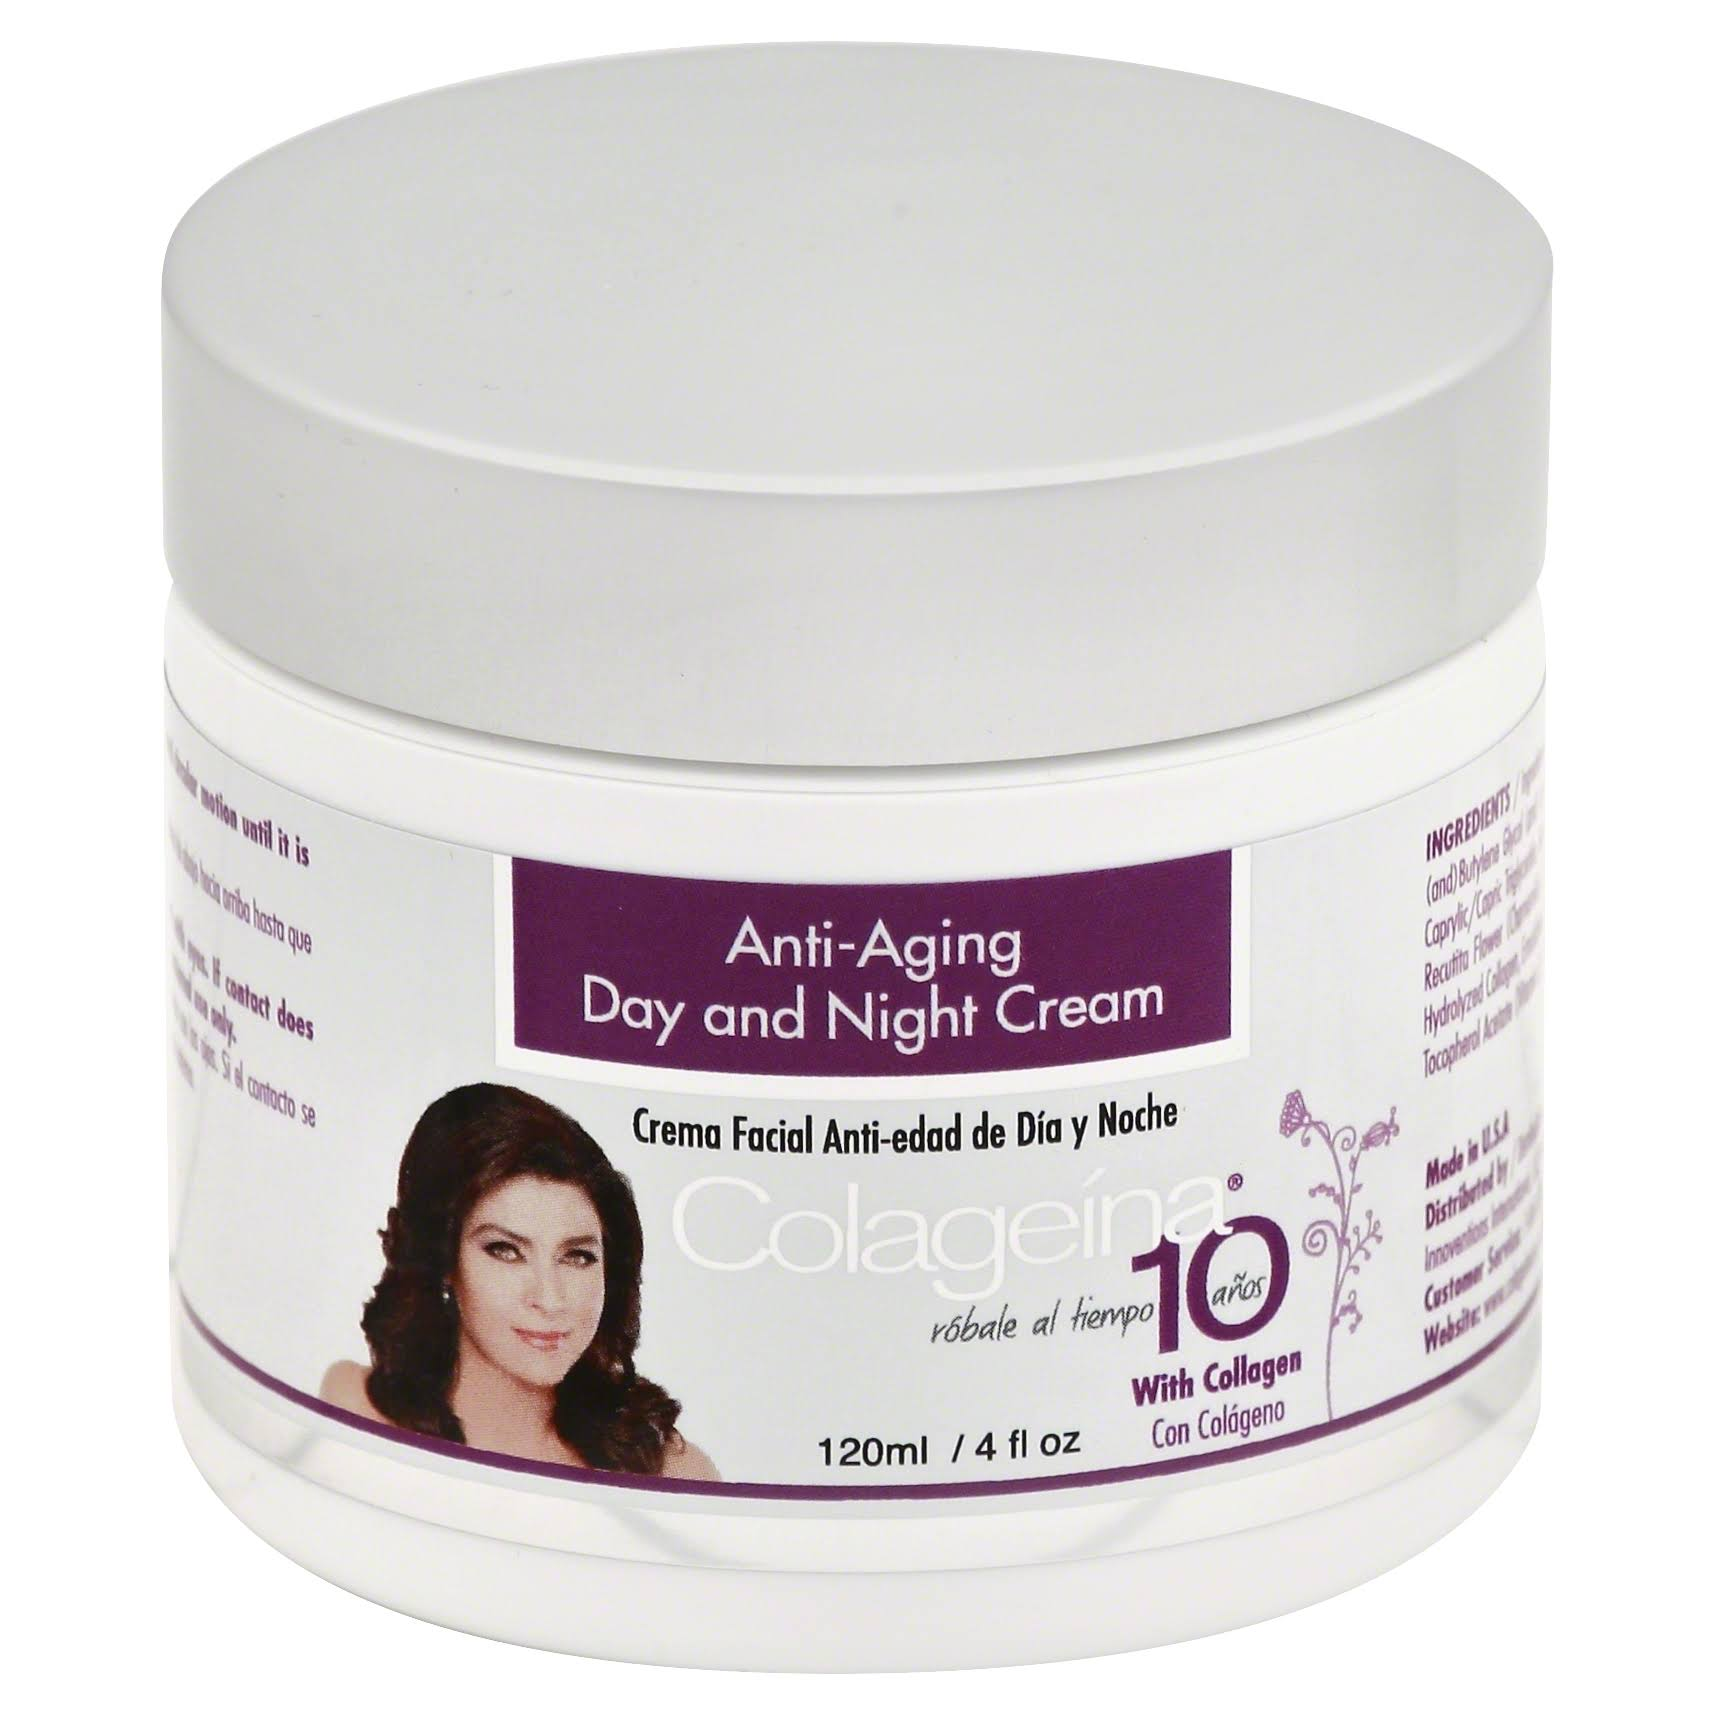 Colageina 10 Anti-aging Day and Night Cream - 4oz